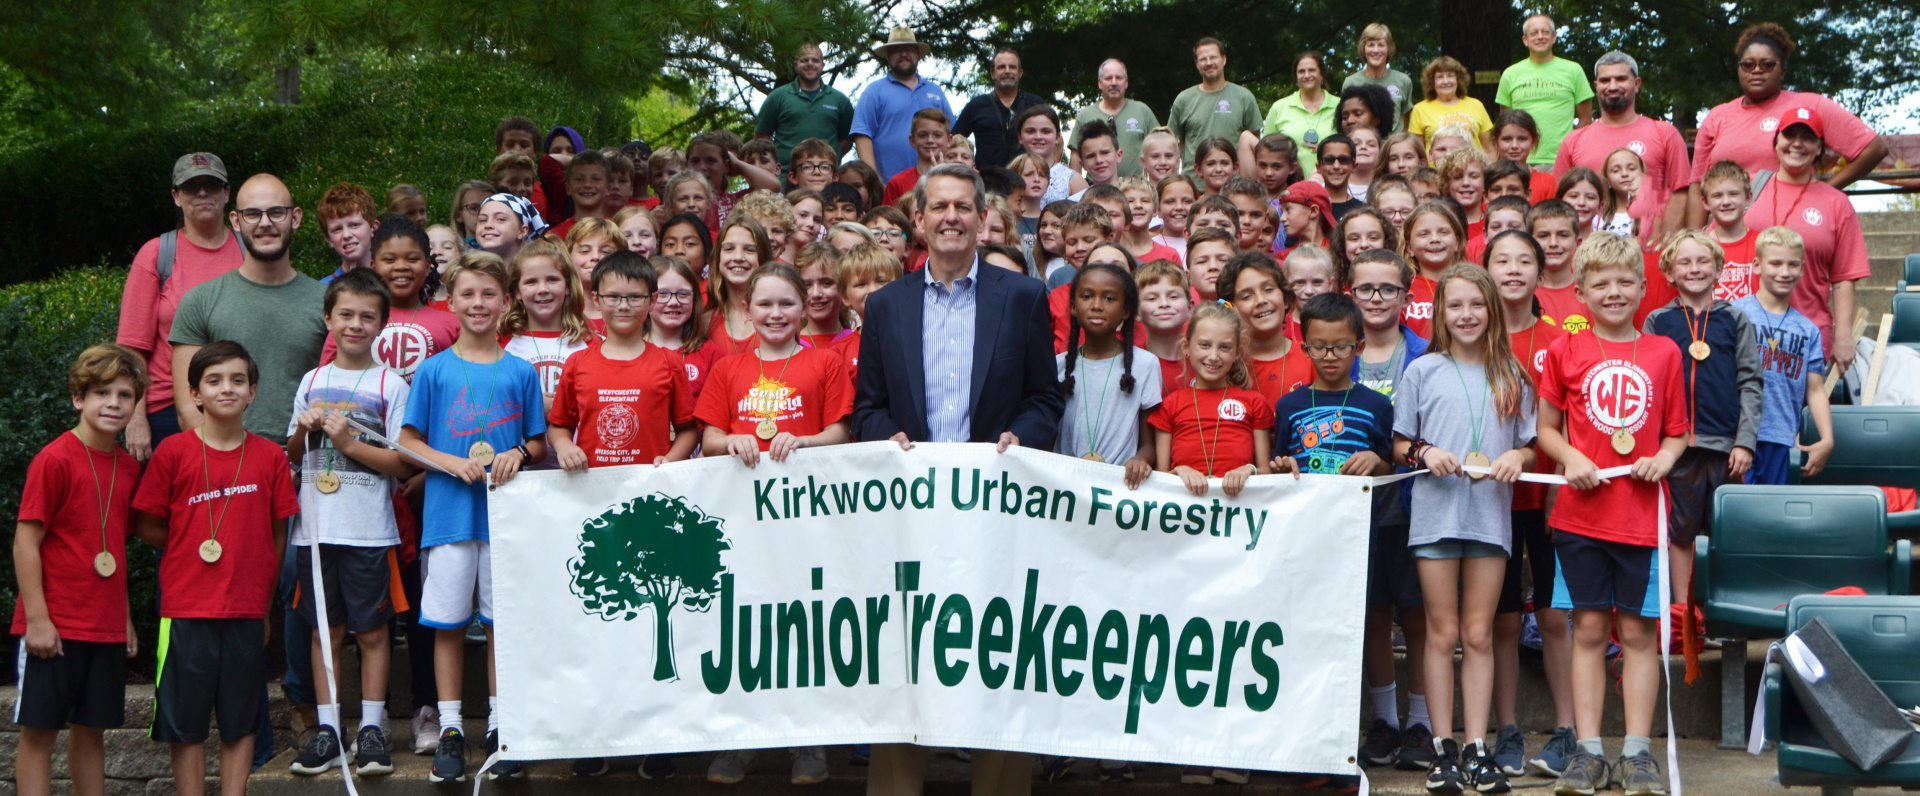 Treekeepers with Mayor